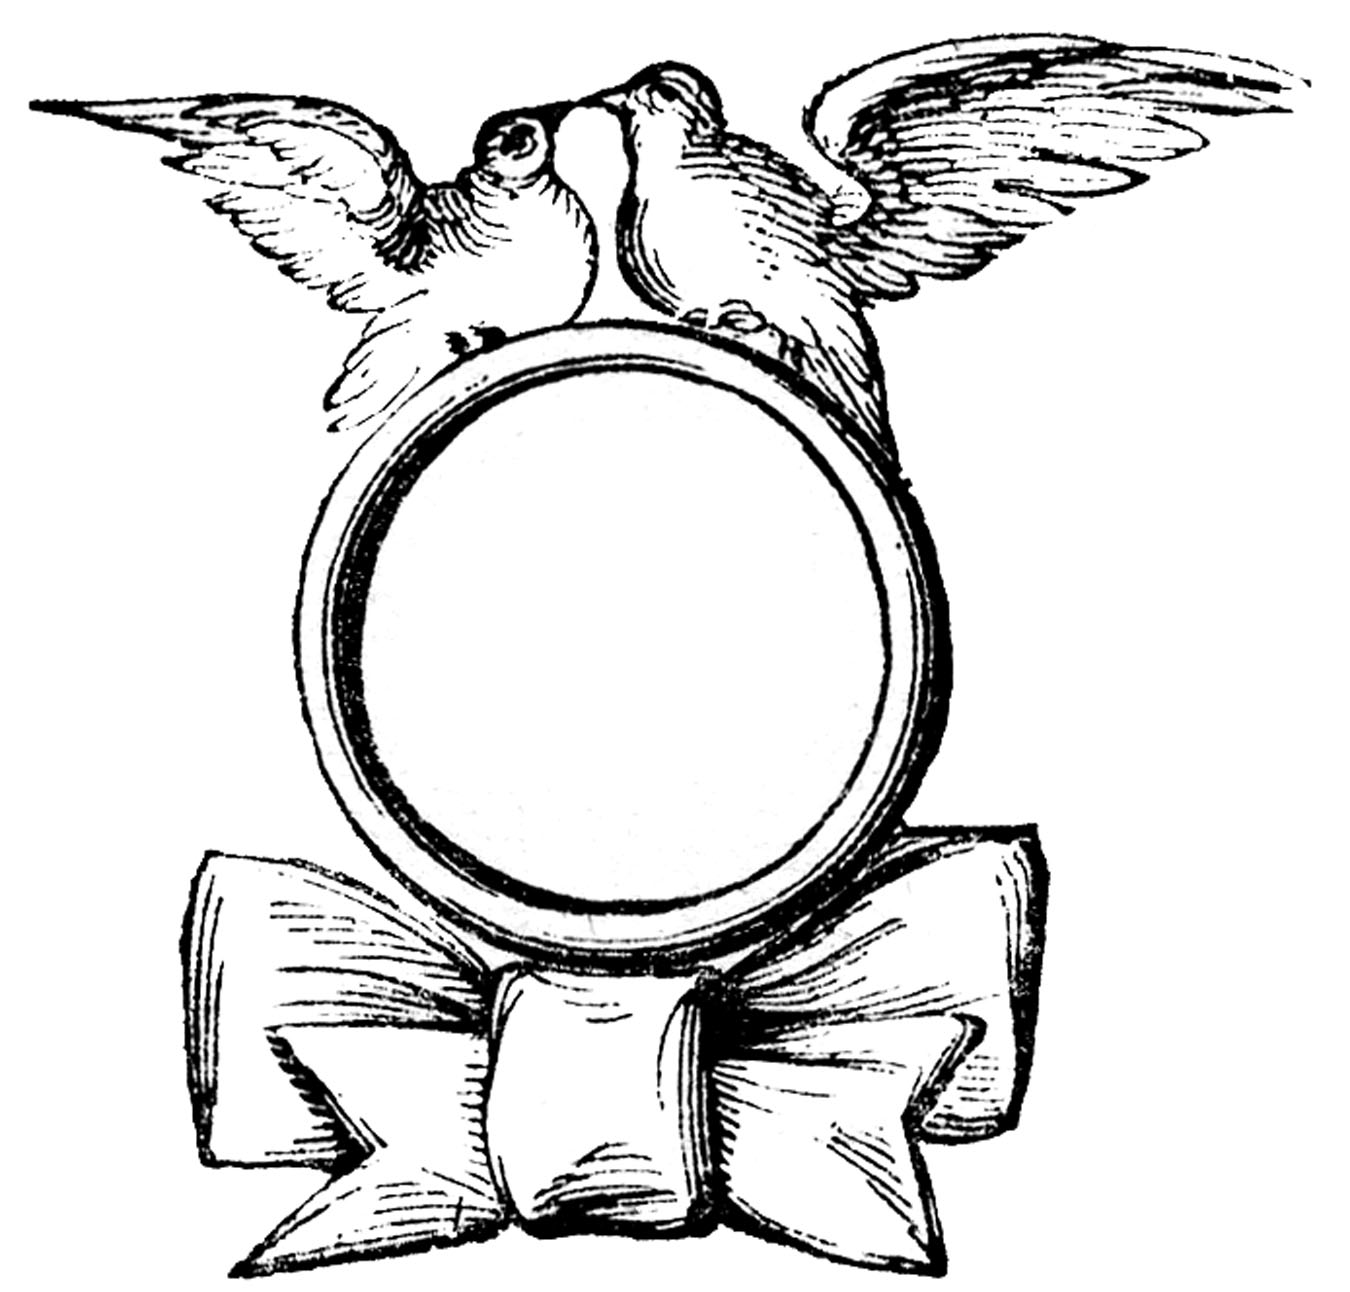 1350x1292 Wedding Ring Vintage Wedding Clip Art Ring With Doves The Graphics